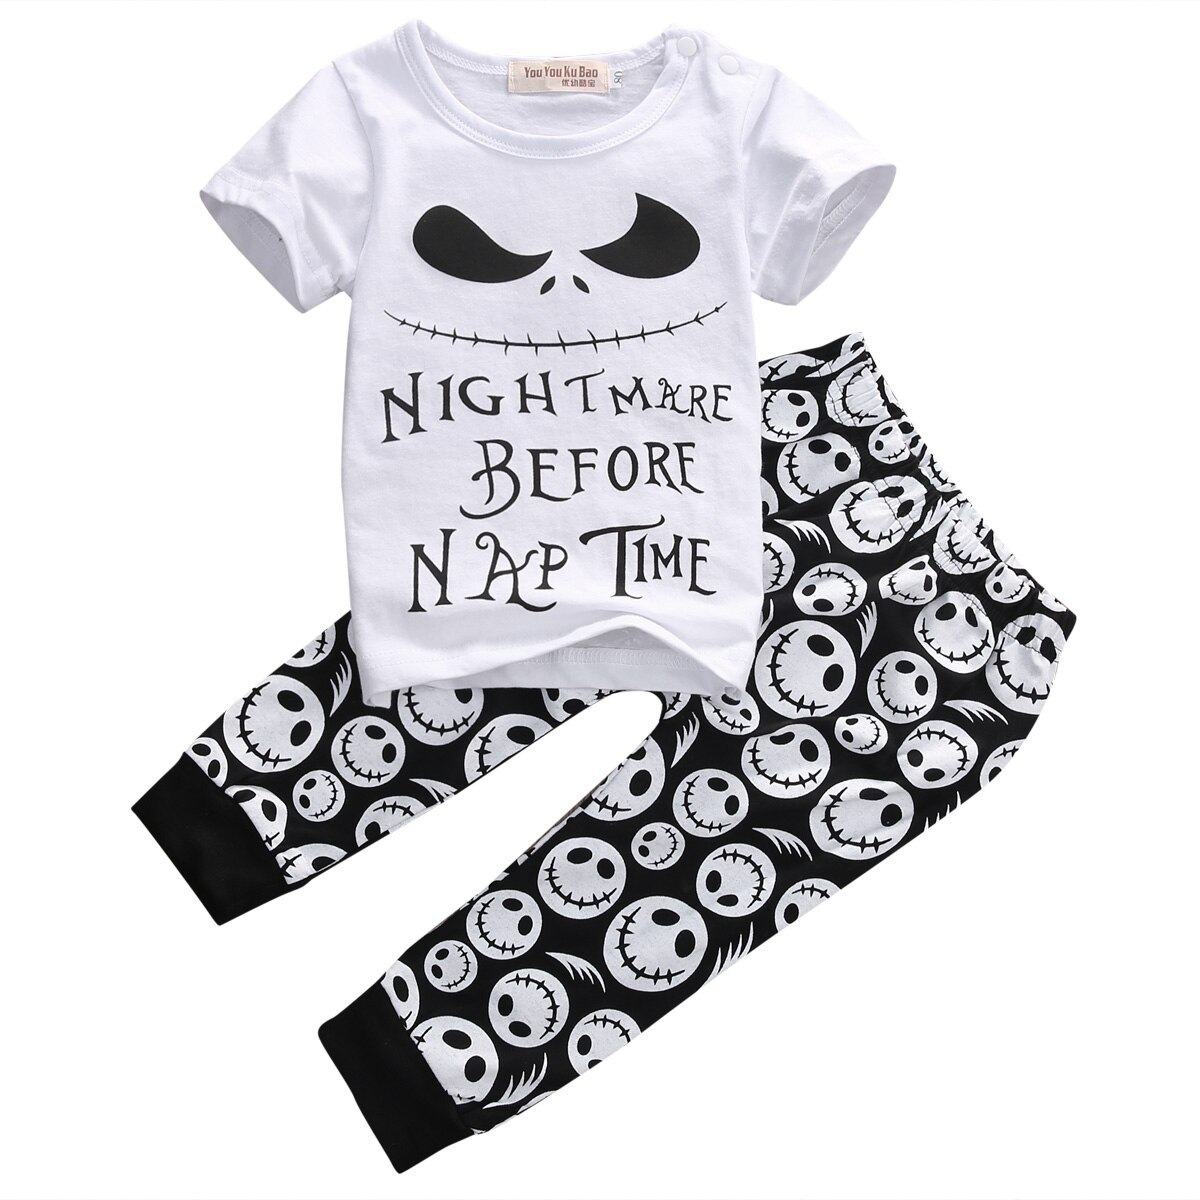 Pudcoco Clothes For Boys T shirt And Leggings Baby Boys Clothes Summer Letter Pr - $10.39